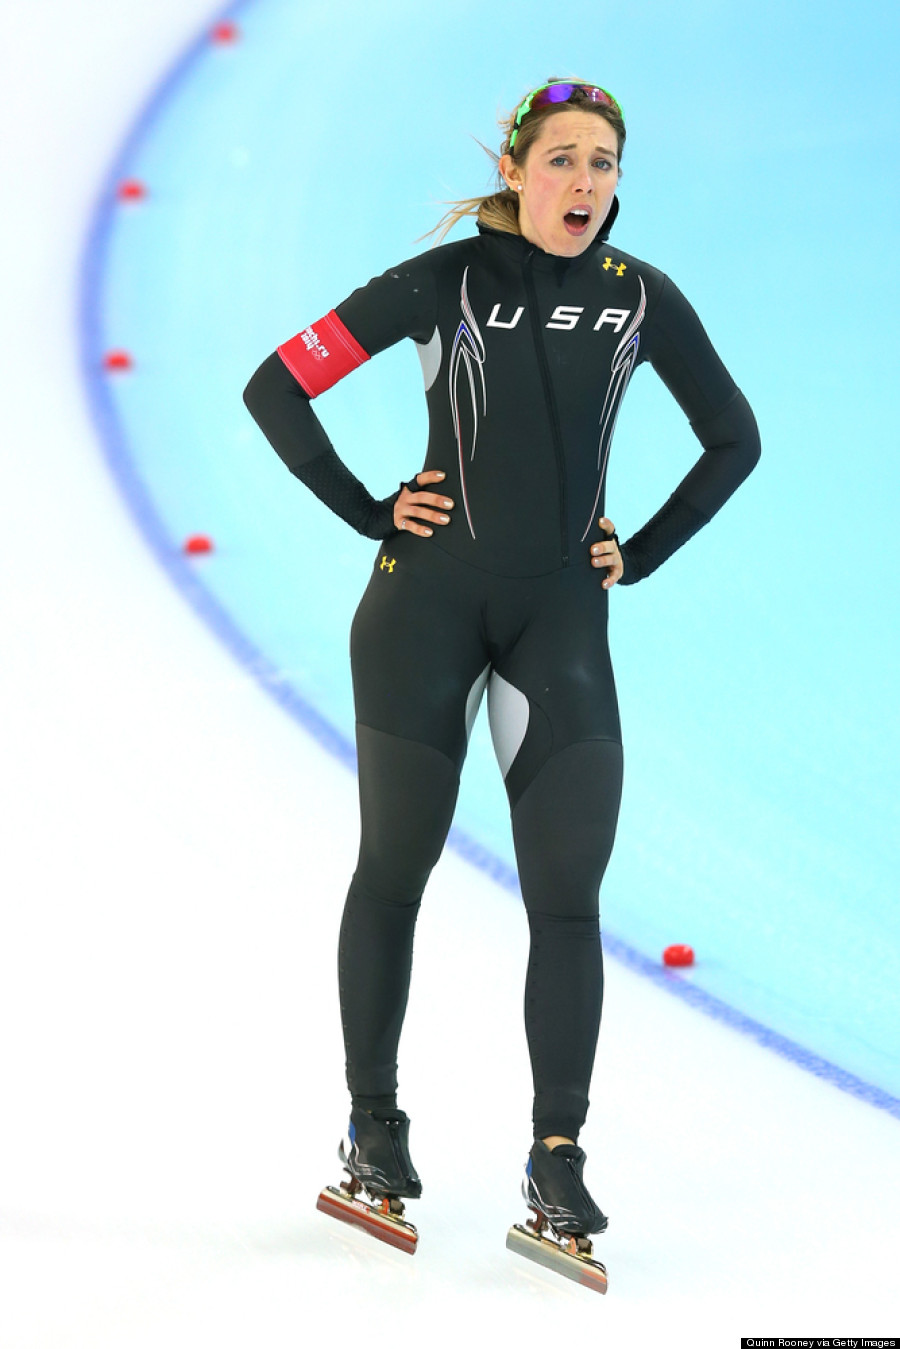 What Are Those Crotch Patches On The Outfits Of The USA Olympic Speed Skating Team? (PHOTOS)